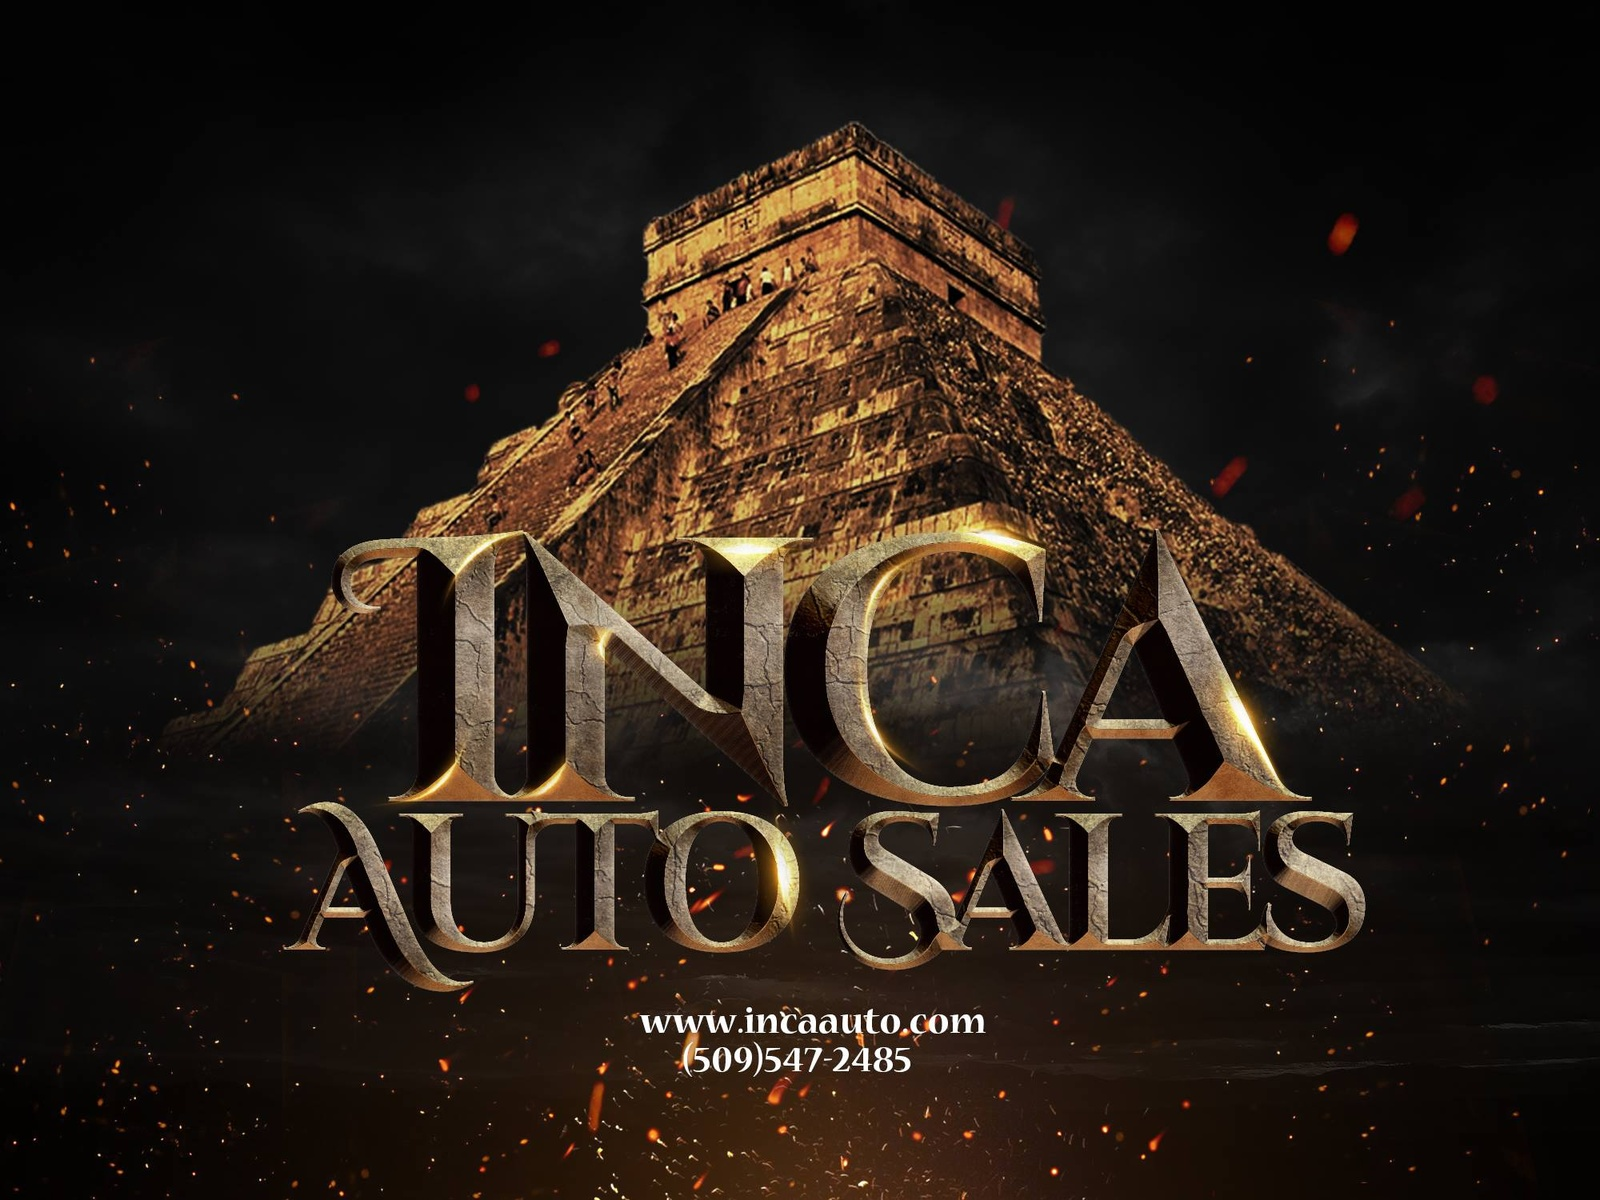 Inca Auto Sales Pasco Wa Read Consumer Reviews Browse Used And